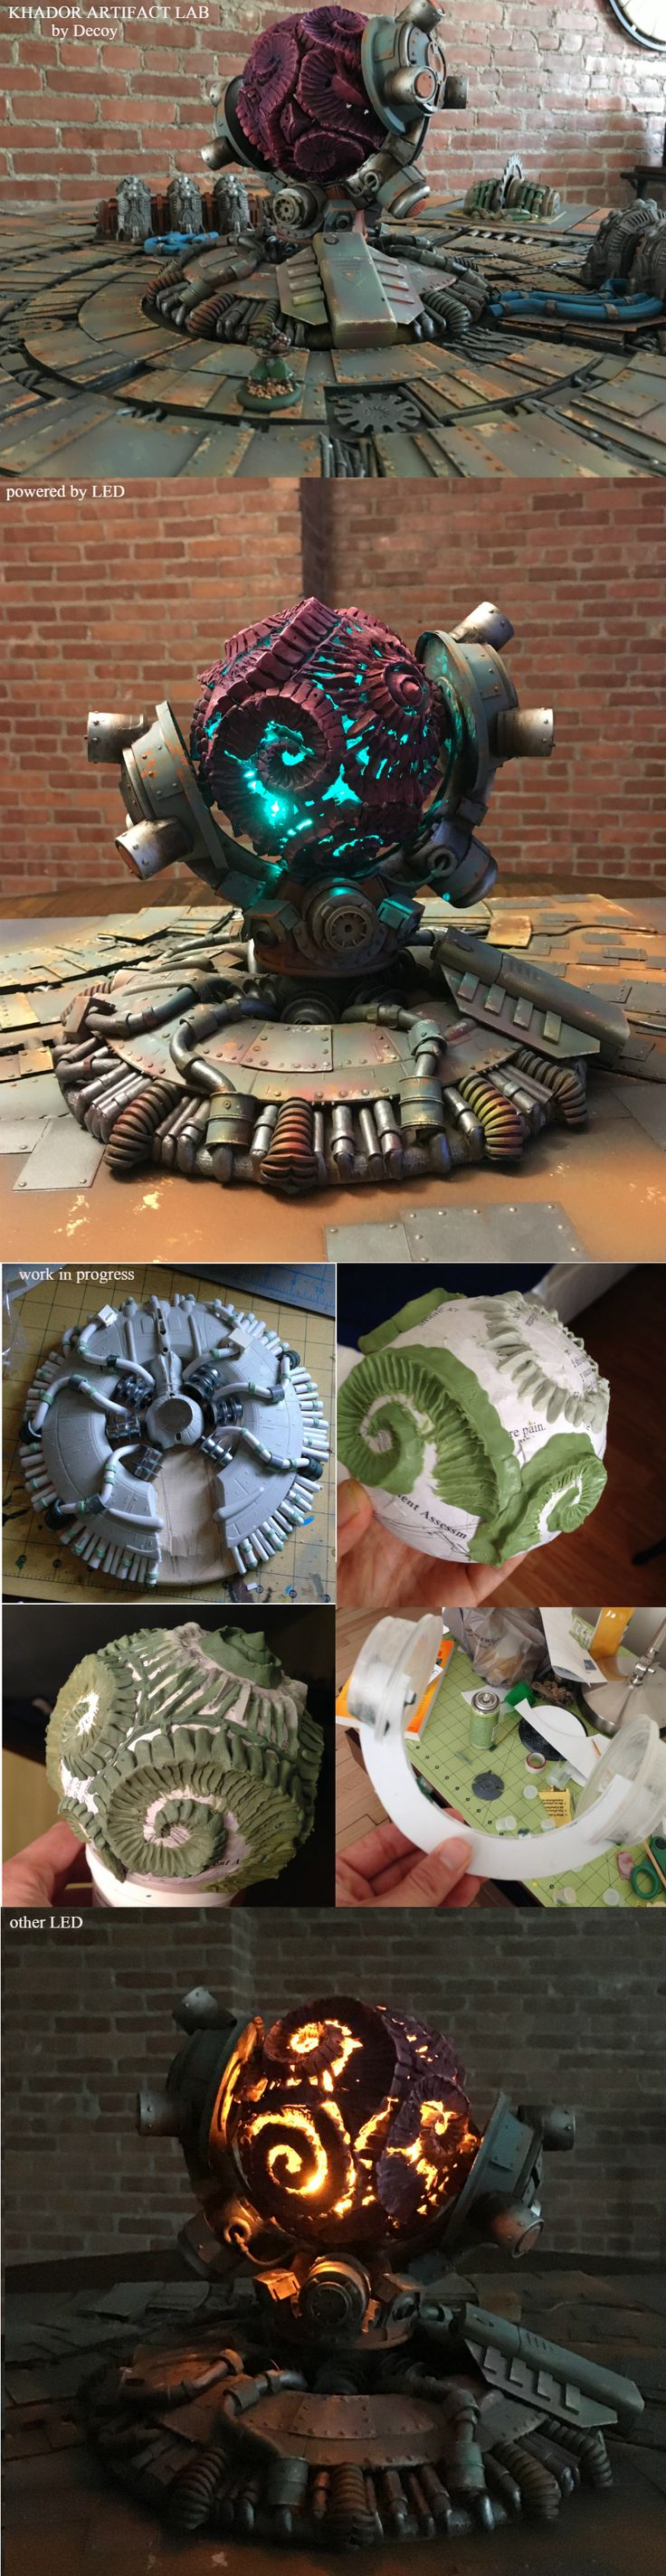 Chulthu artifact laboratory - steampunk terrain 4 by 4 feet - Forum - DakkaDakka | I see lead people.